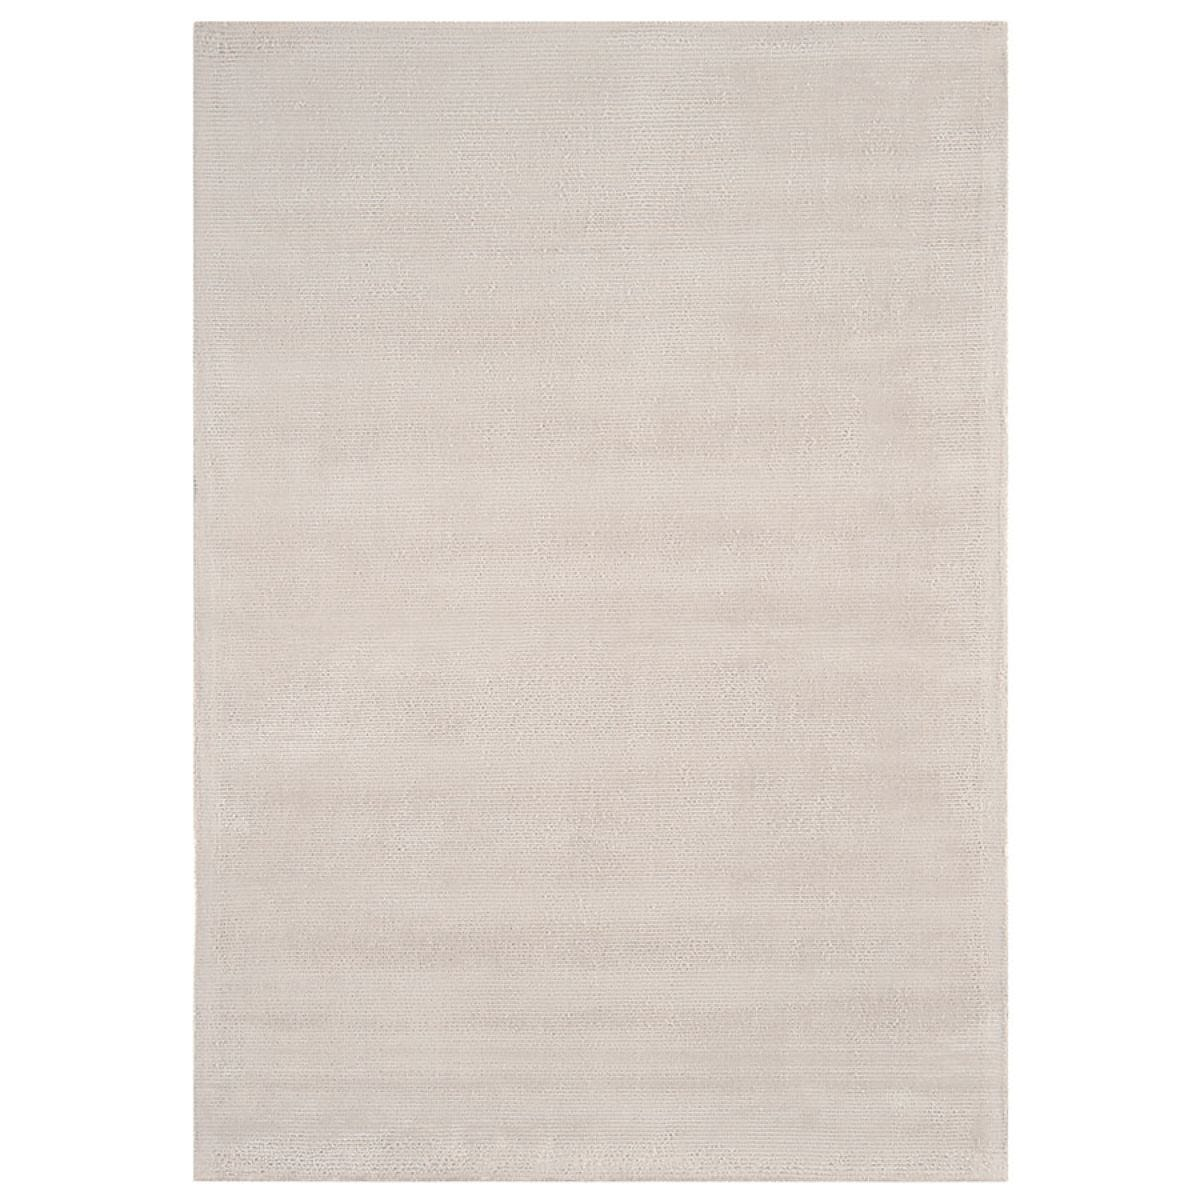 Asiatic Reko Rug, 150 x 100cm - Putty